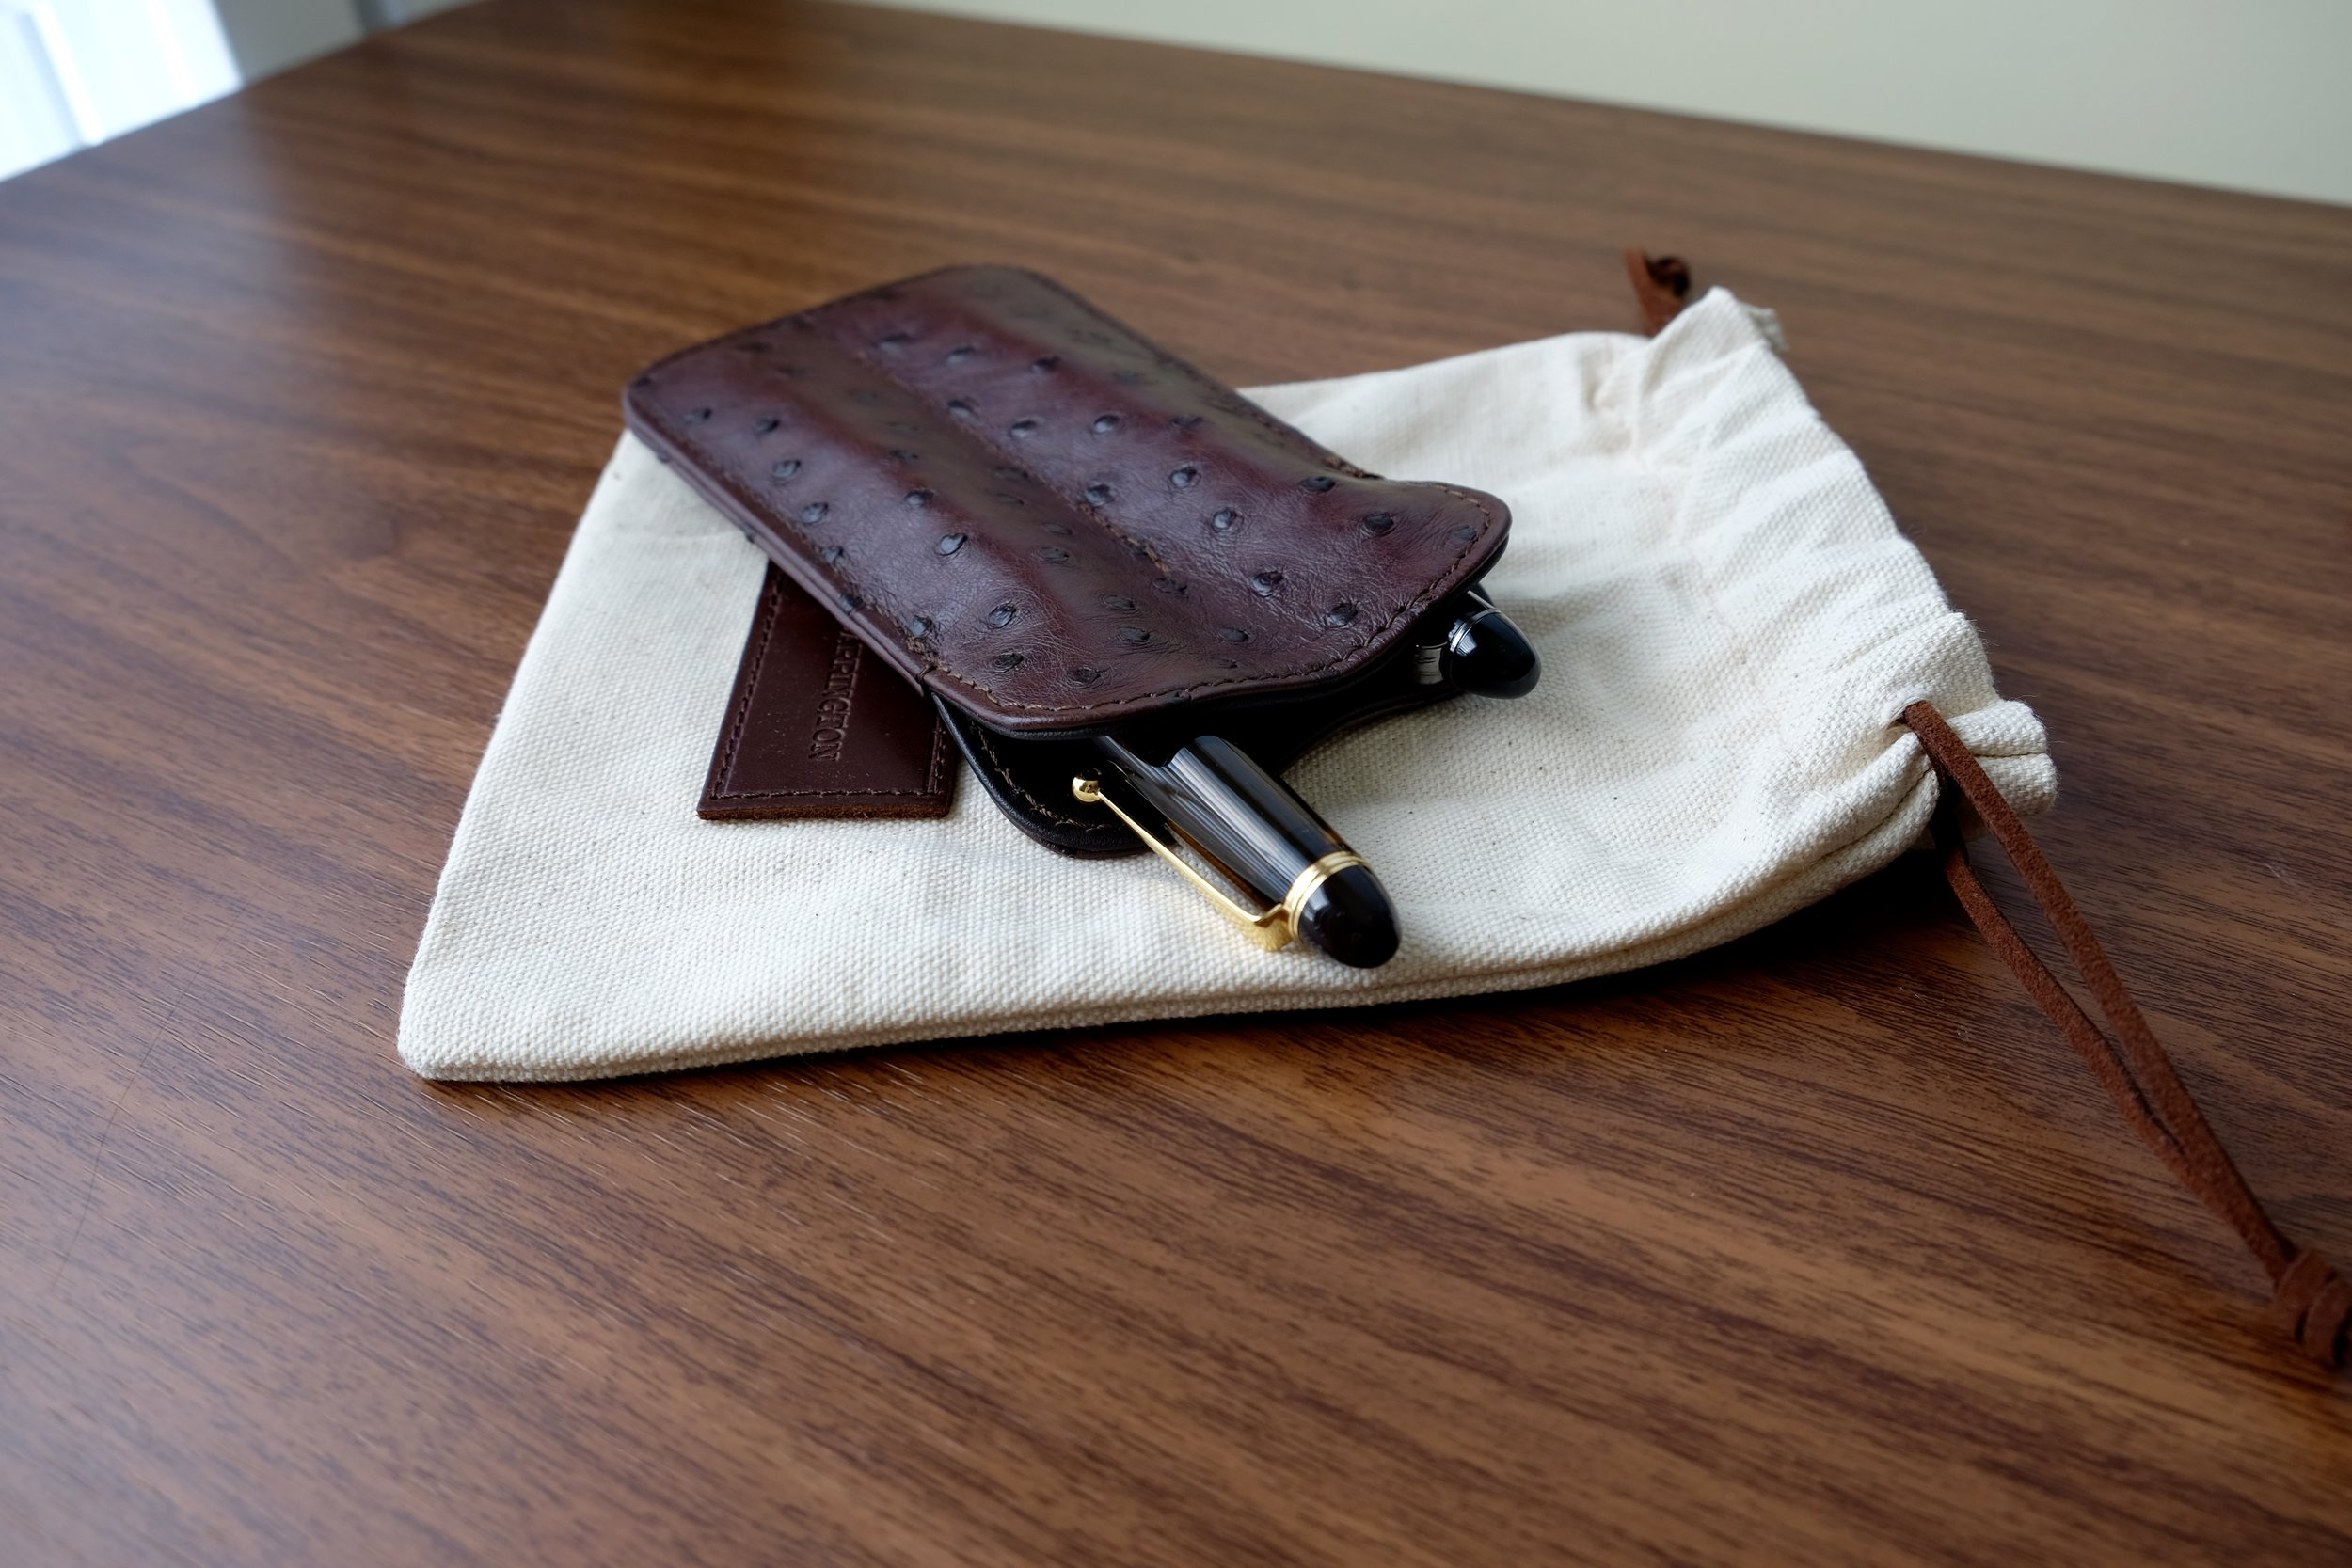 Tom Barrington sent over this gorgeous dark brown ostrich leather pen sleeve for review.